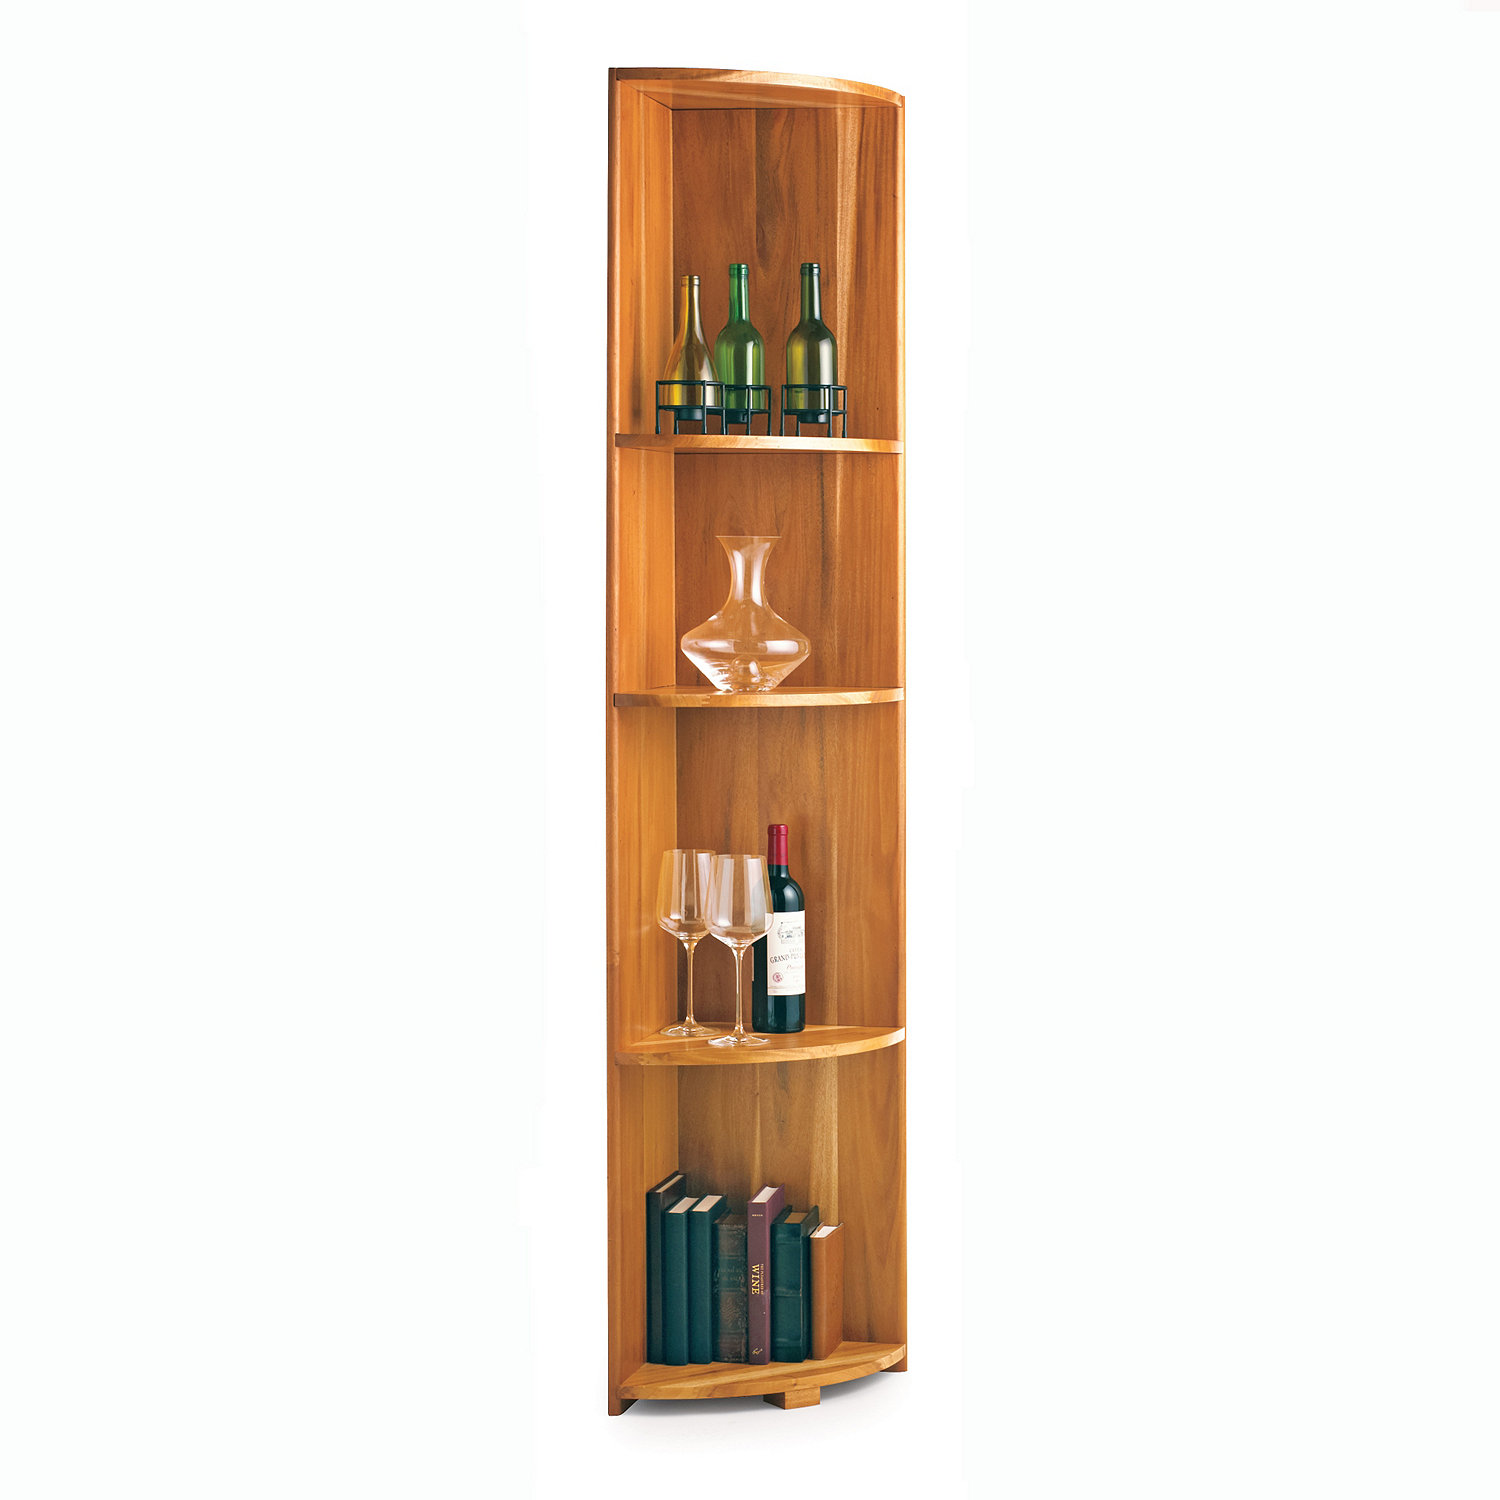 High Quality ... Wine Rack Kit  Quarter Round Shelf. SALE. Preparing Zoom